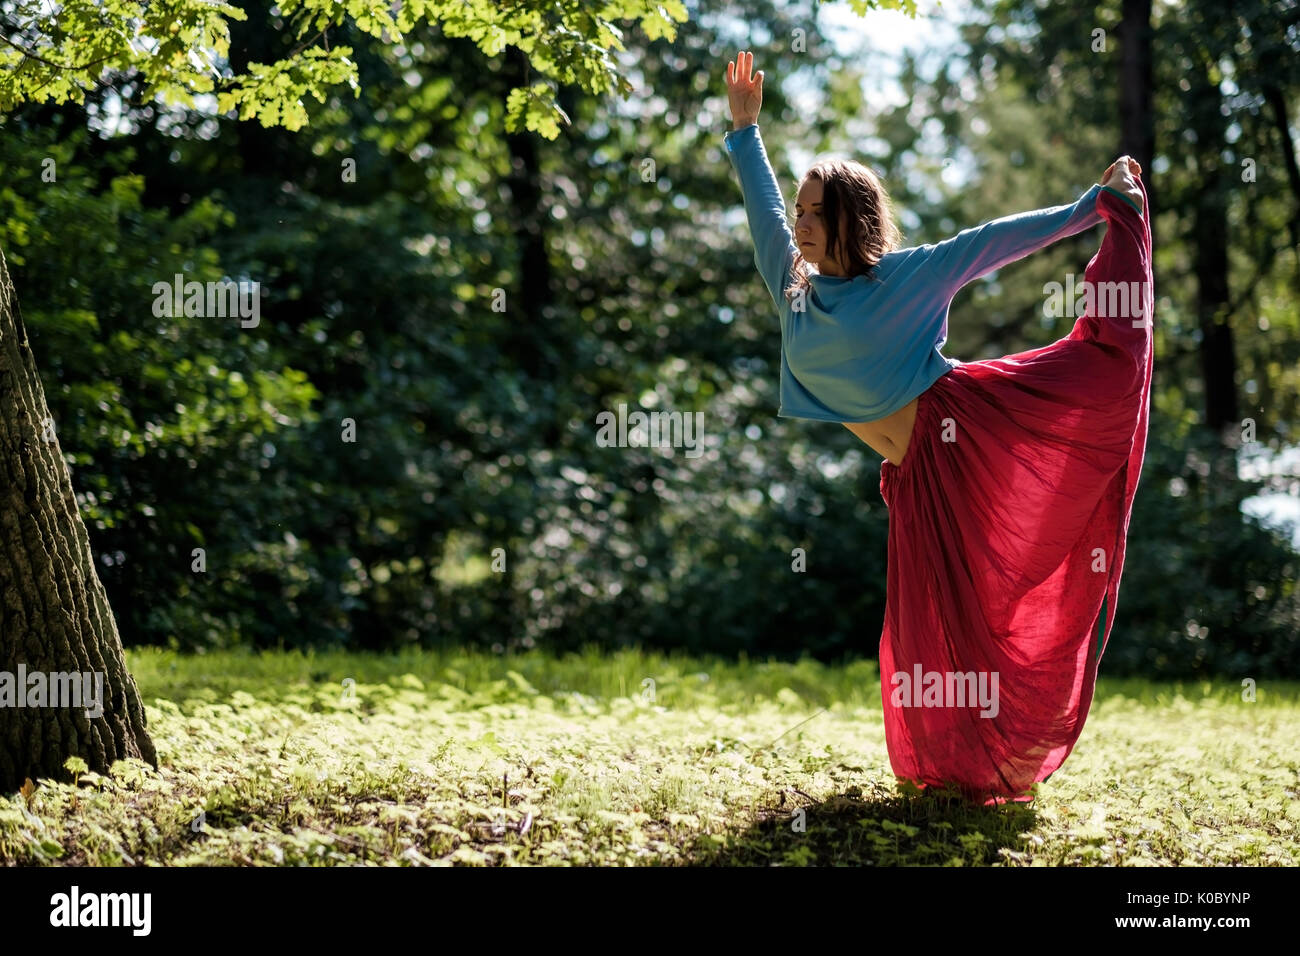 Mettre en place sportive woman faisant l'asana Virabhadrasana 2 guerrier pose posture dans la nature. Photo Stock